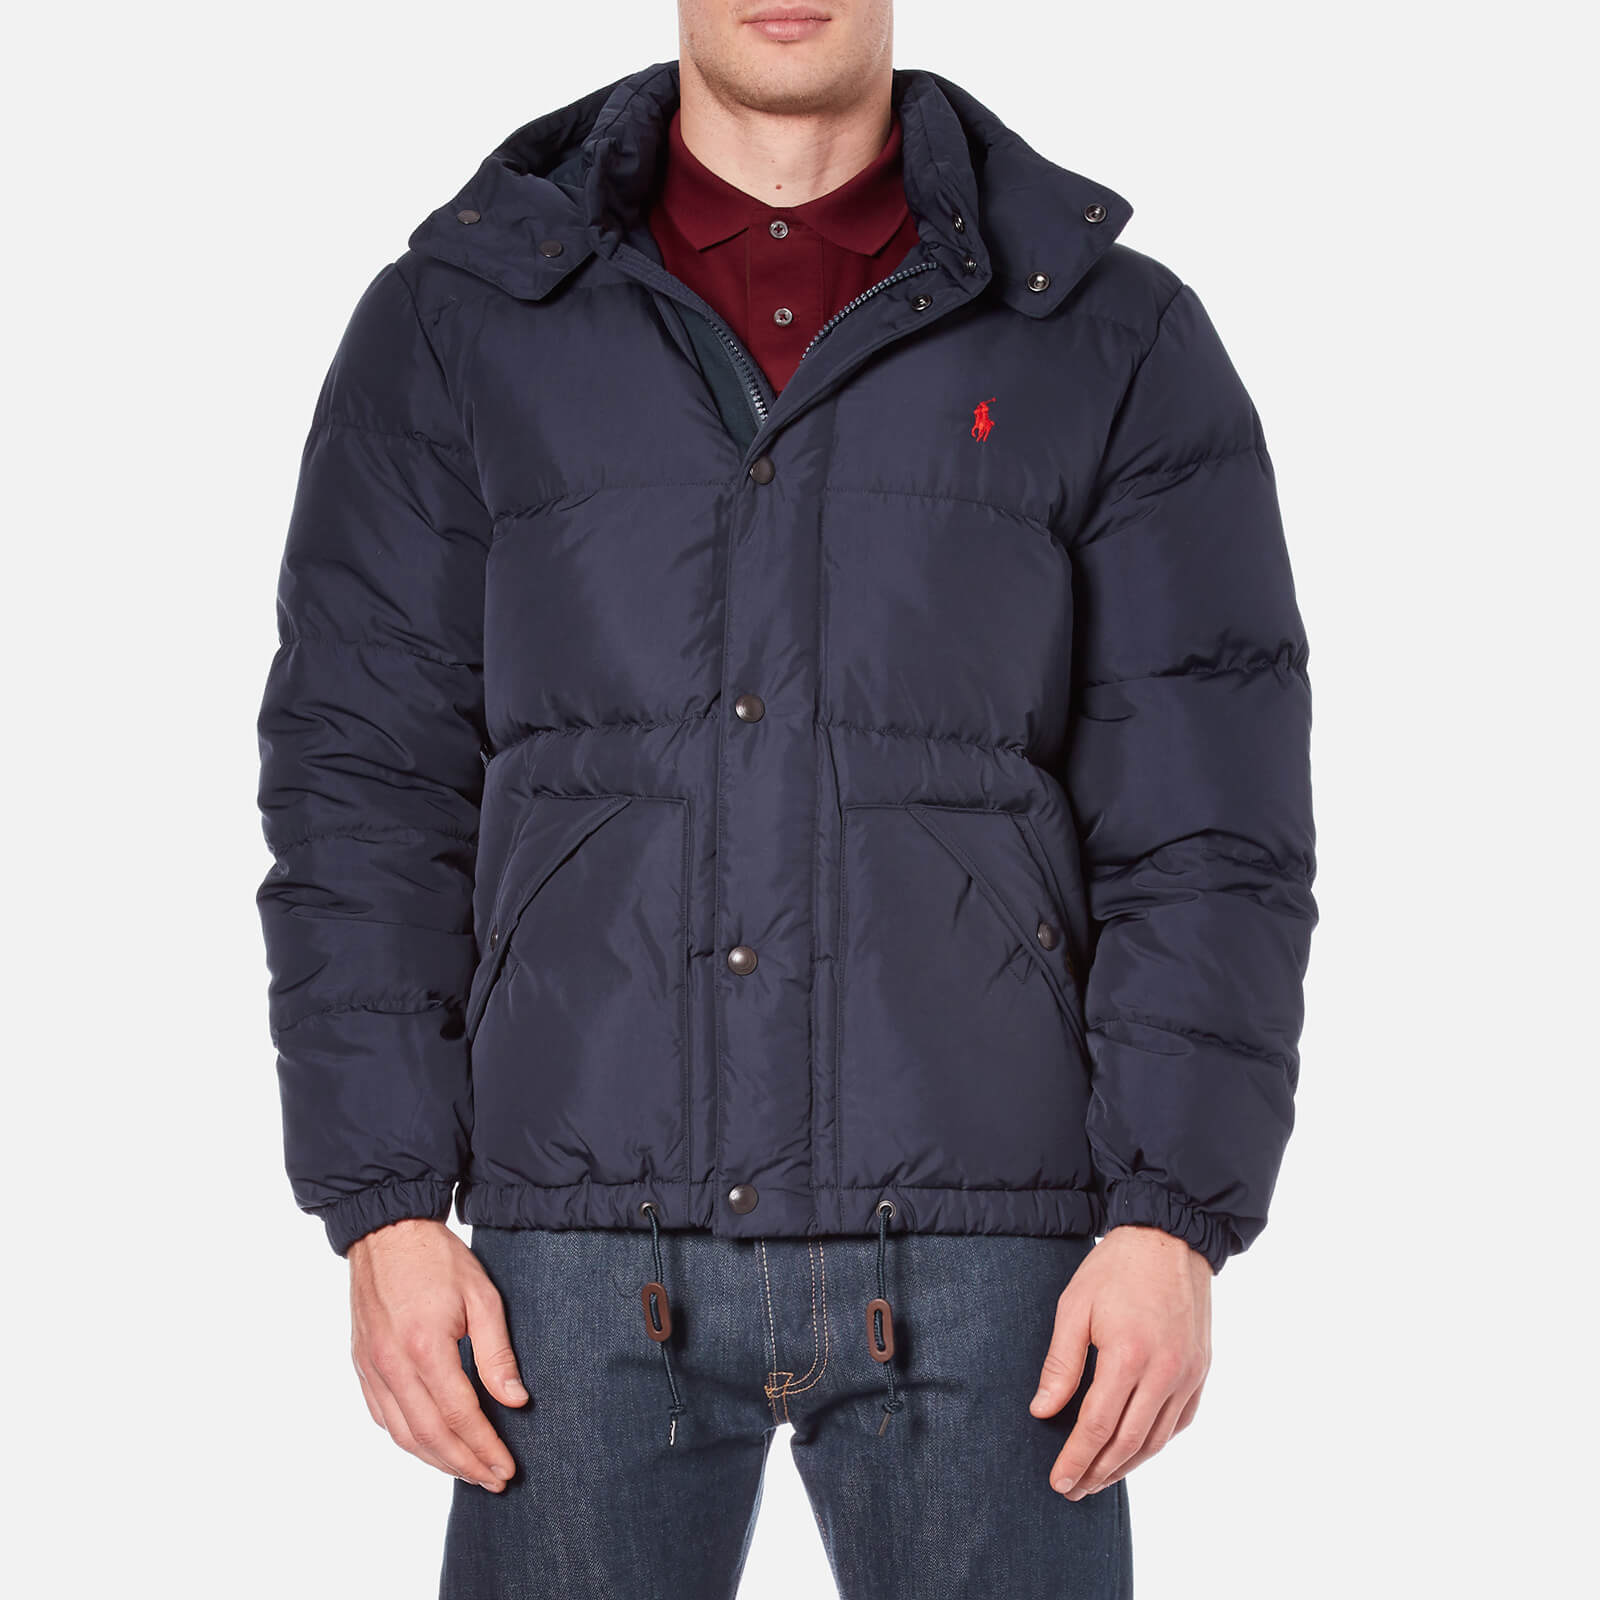 6cb473fc9 Polo Ralph Lauren Men s Down Filled Hooded Jacket - Worth Navy - Free UK  Delivery over £50